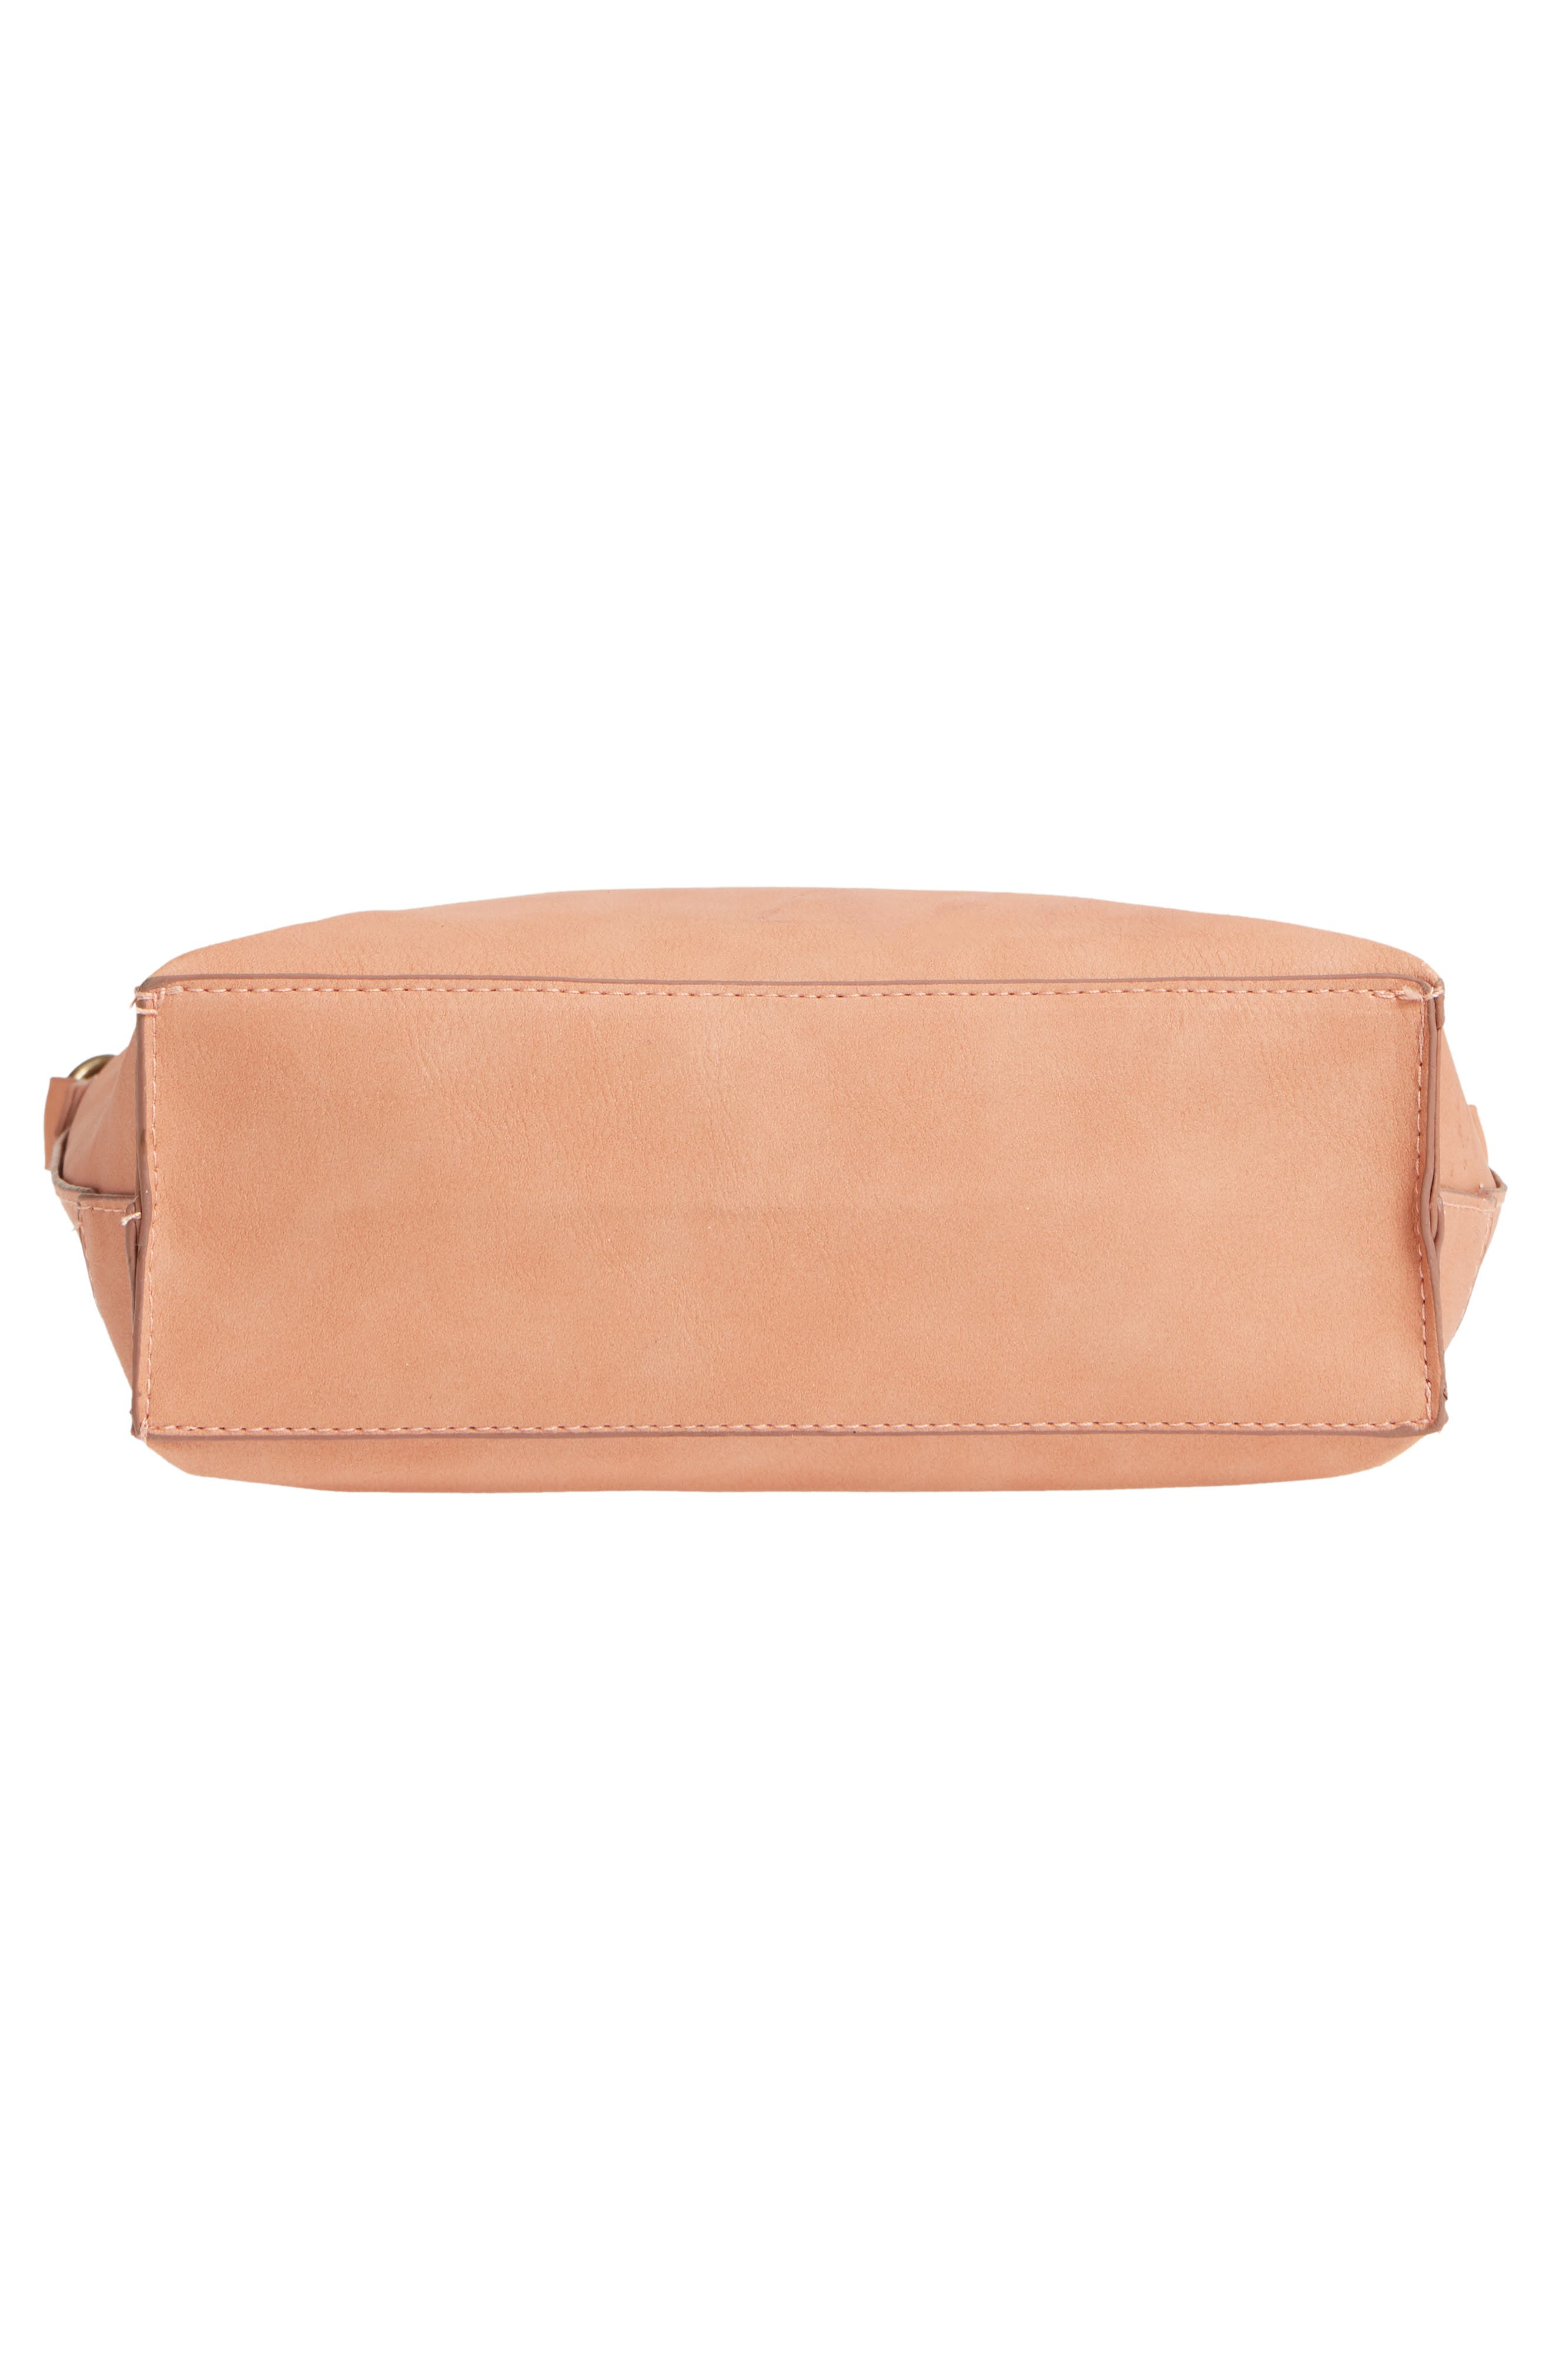 Wood Handle Stitched Tote,                             Alternate thumbnail 6, color,                             Clay